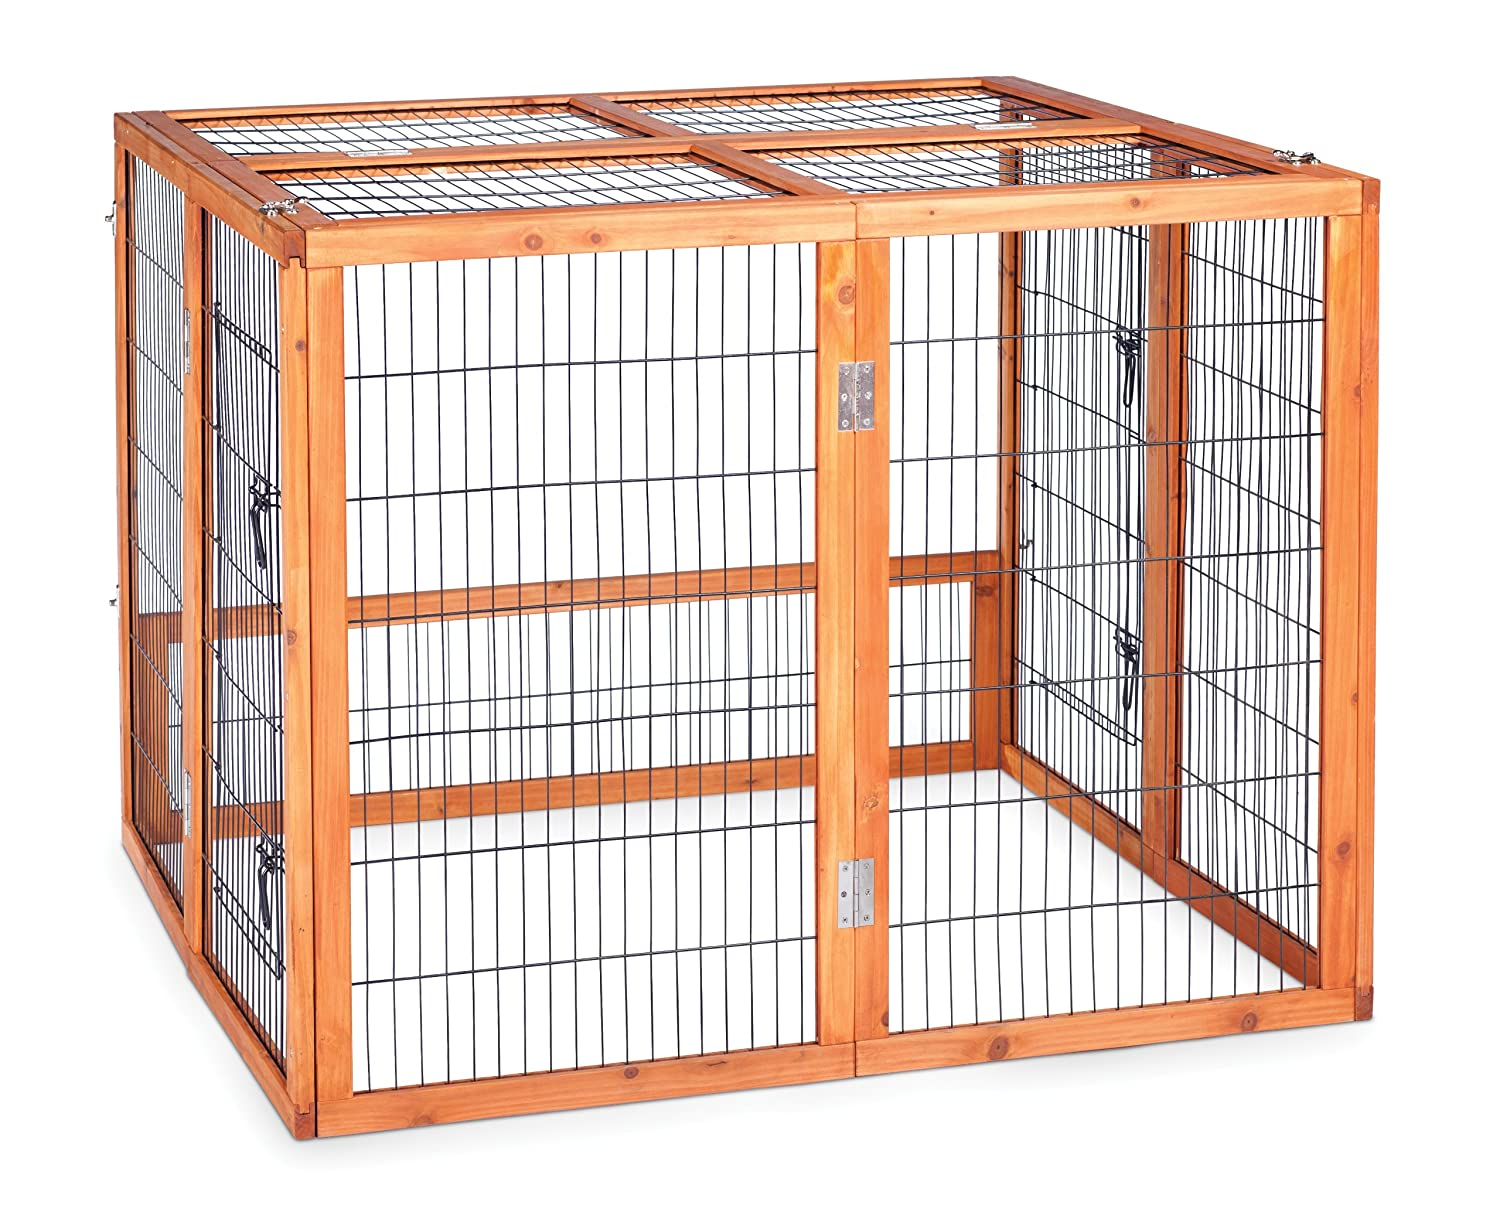 Prevue Hendryx Pet Products Rabbit Playpen